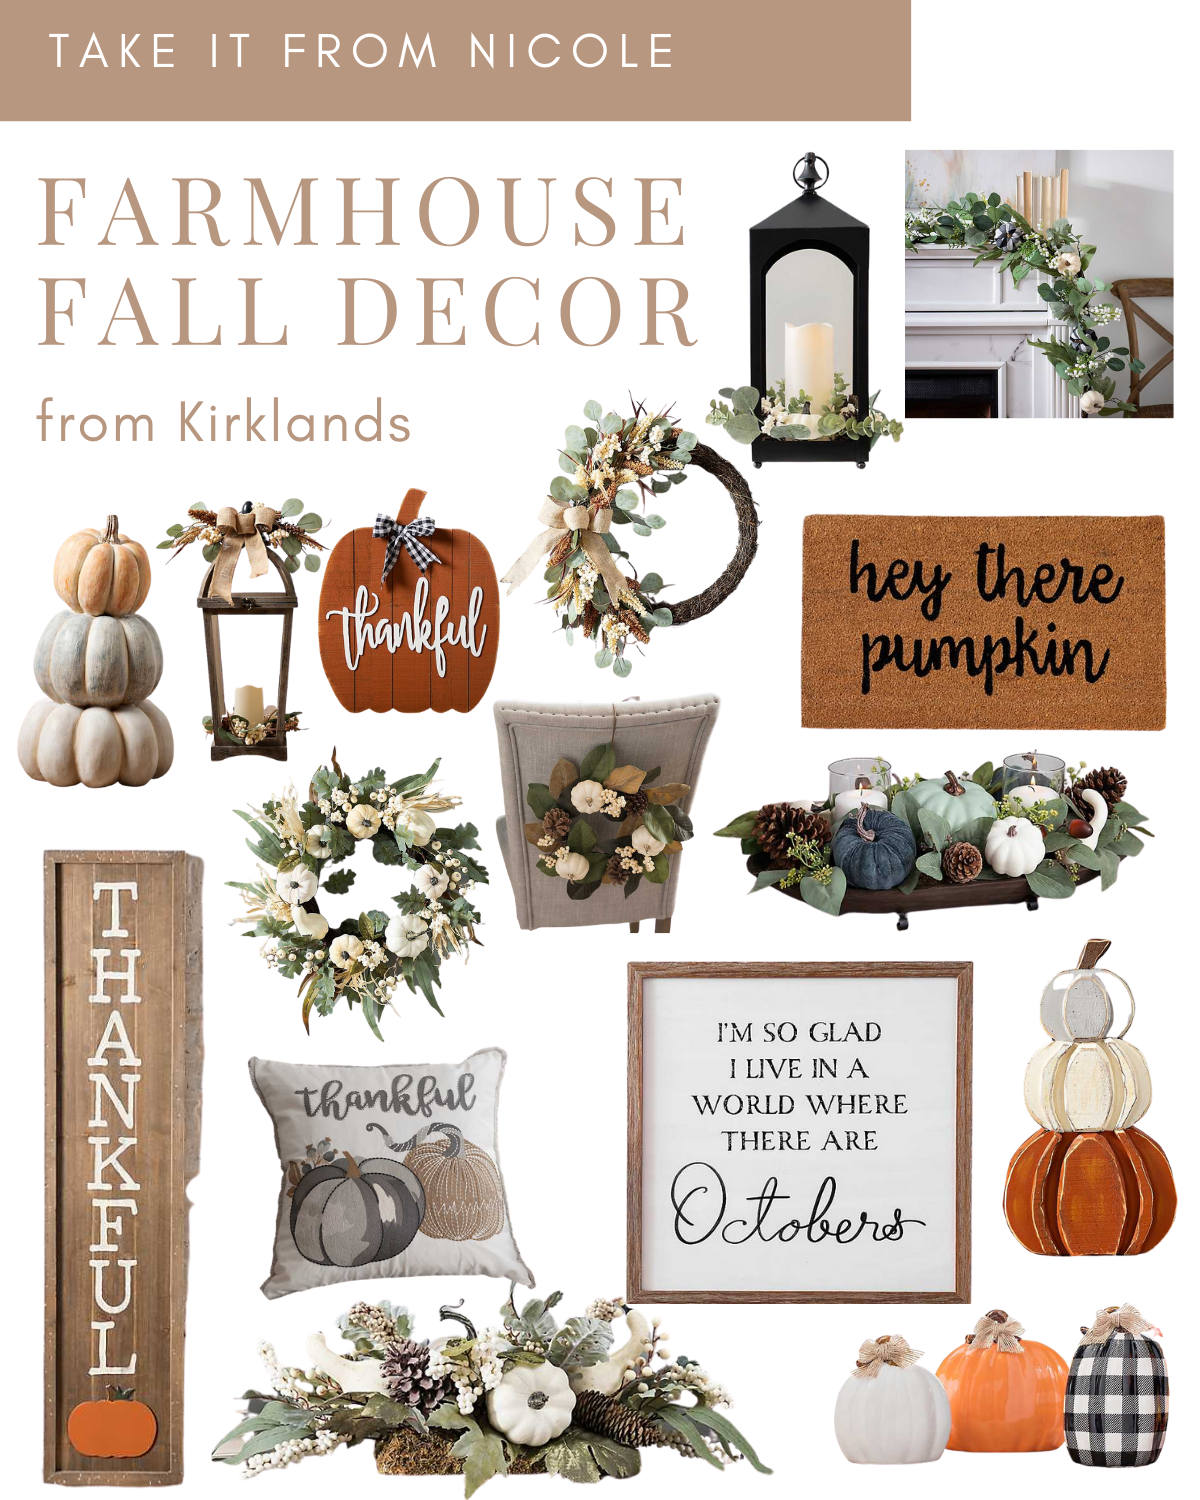 I rounded up some Fall Decor Favorites from Kirklands! So many cute autumn decorations- lots of pumpkins, buffalo plaid, signs, wreaths, greenery, centerpieces etc. Shop them in the link